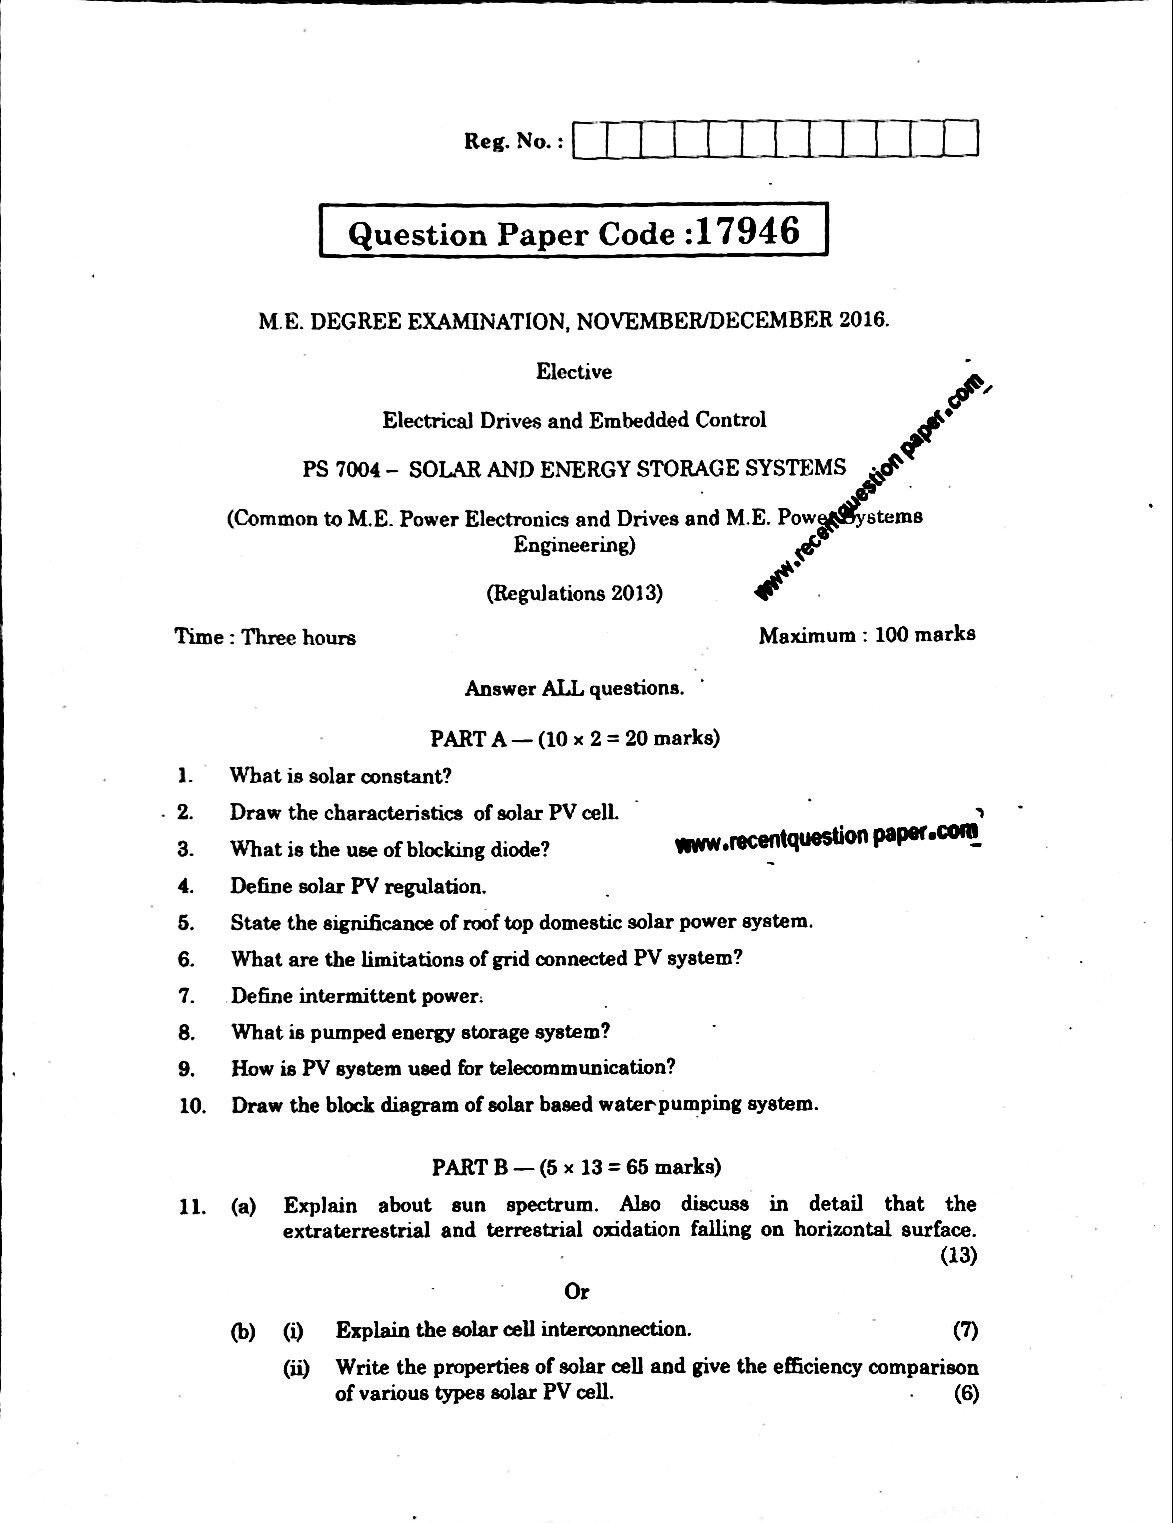 PS7004 Solar And Energy Storage Systems Anna University Question paper Nov/Dec 2016